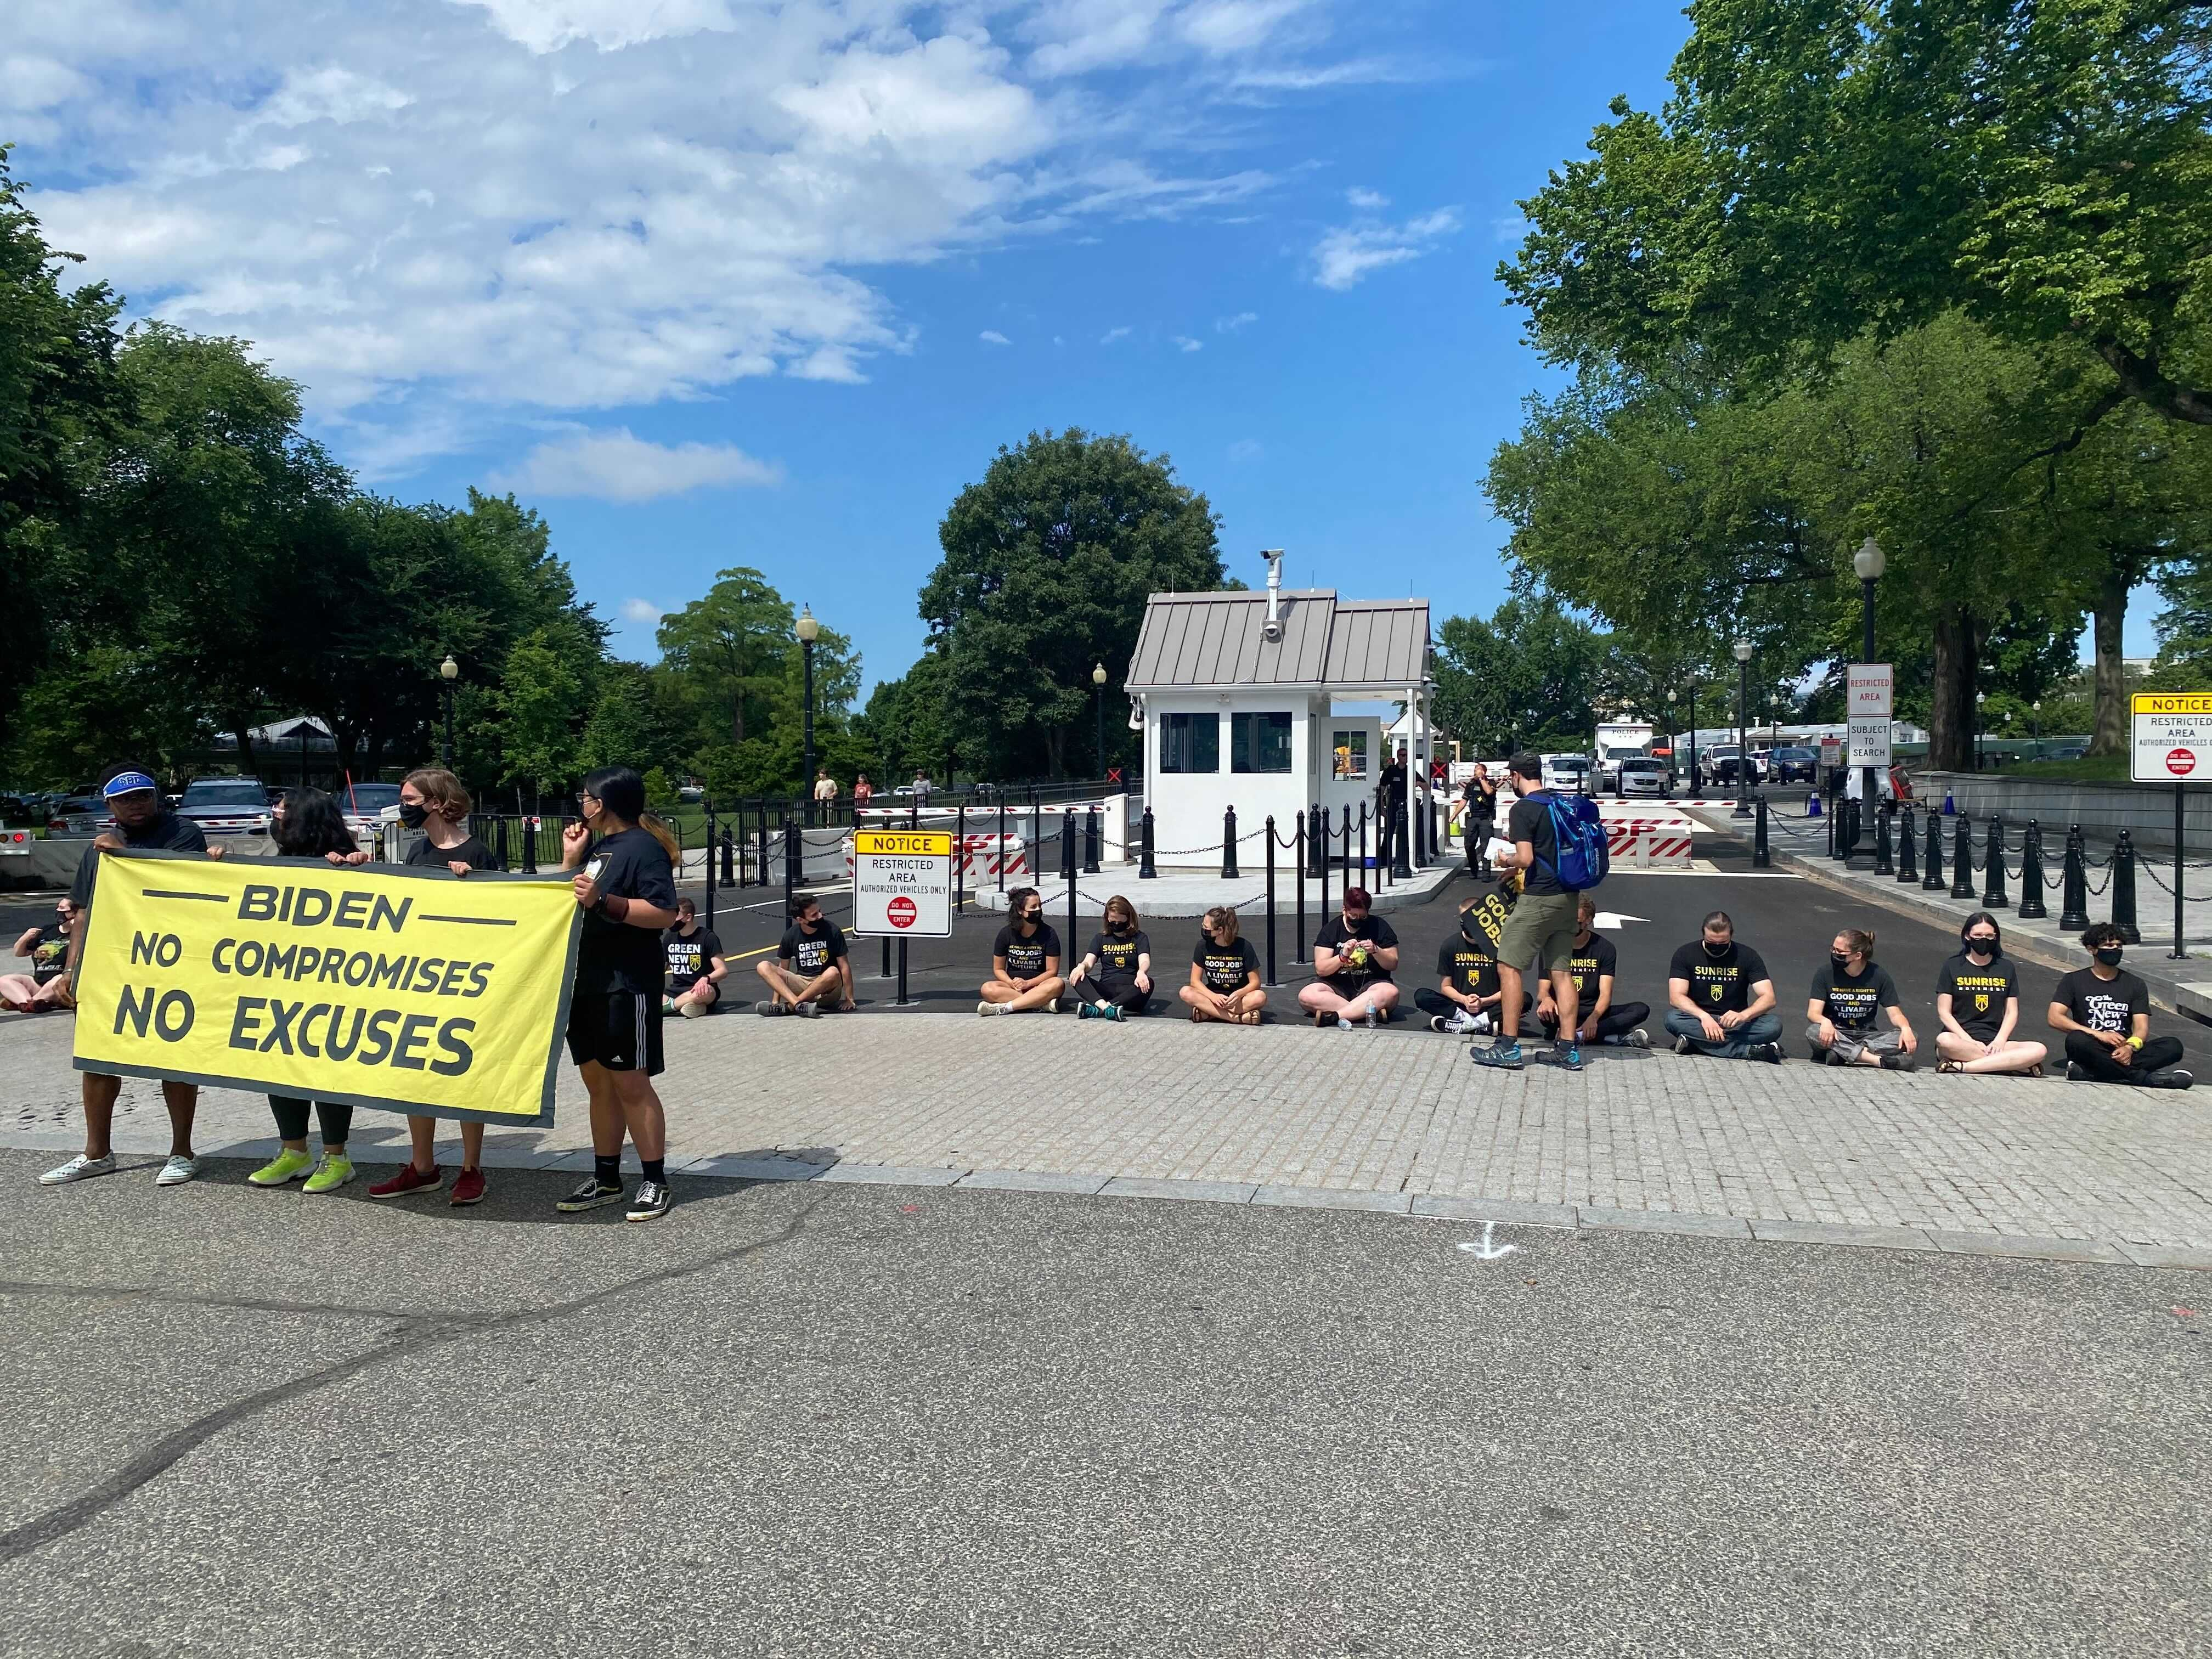 Sunrise Movement protesters blocked the entrance to the White House.